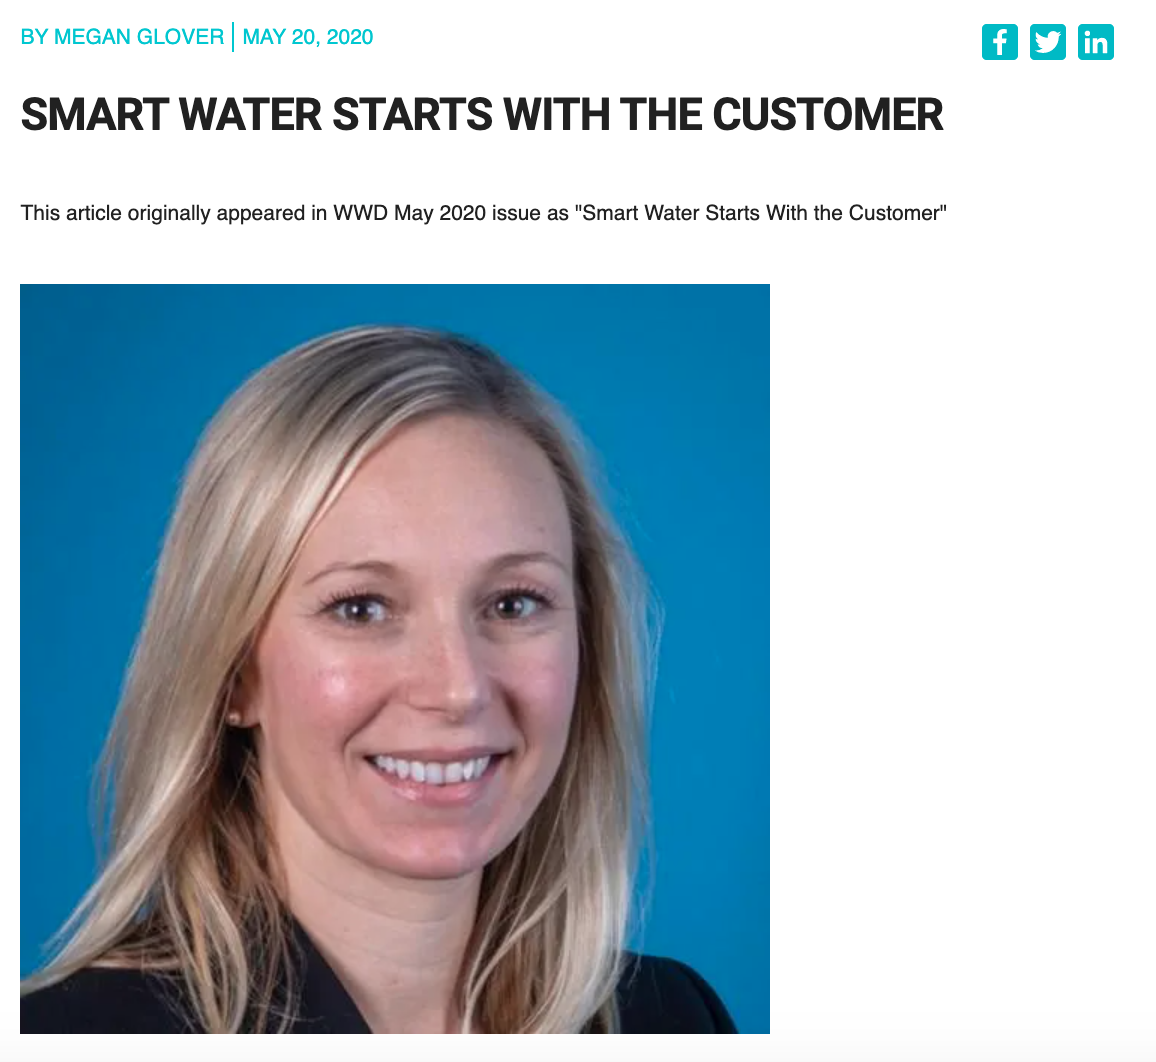 Smart Water Starts With The Customer – Megan Glover featured in WWD Magazine